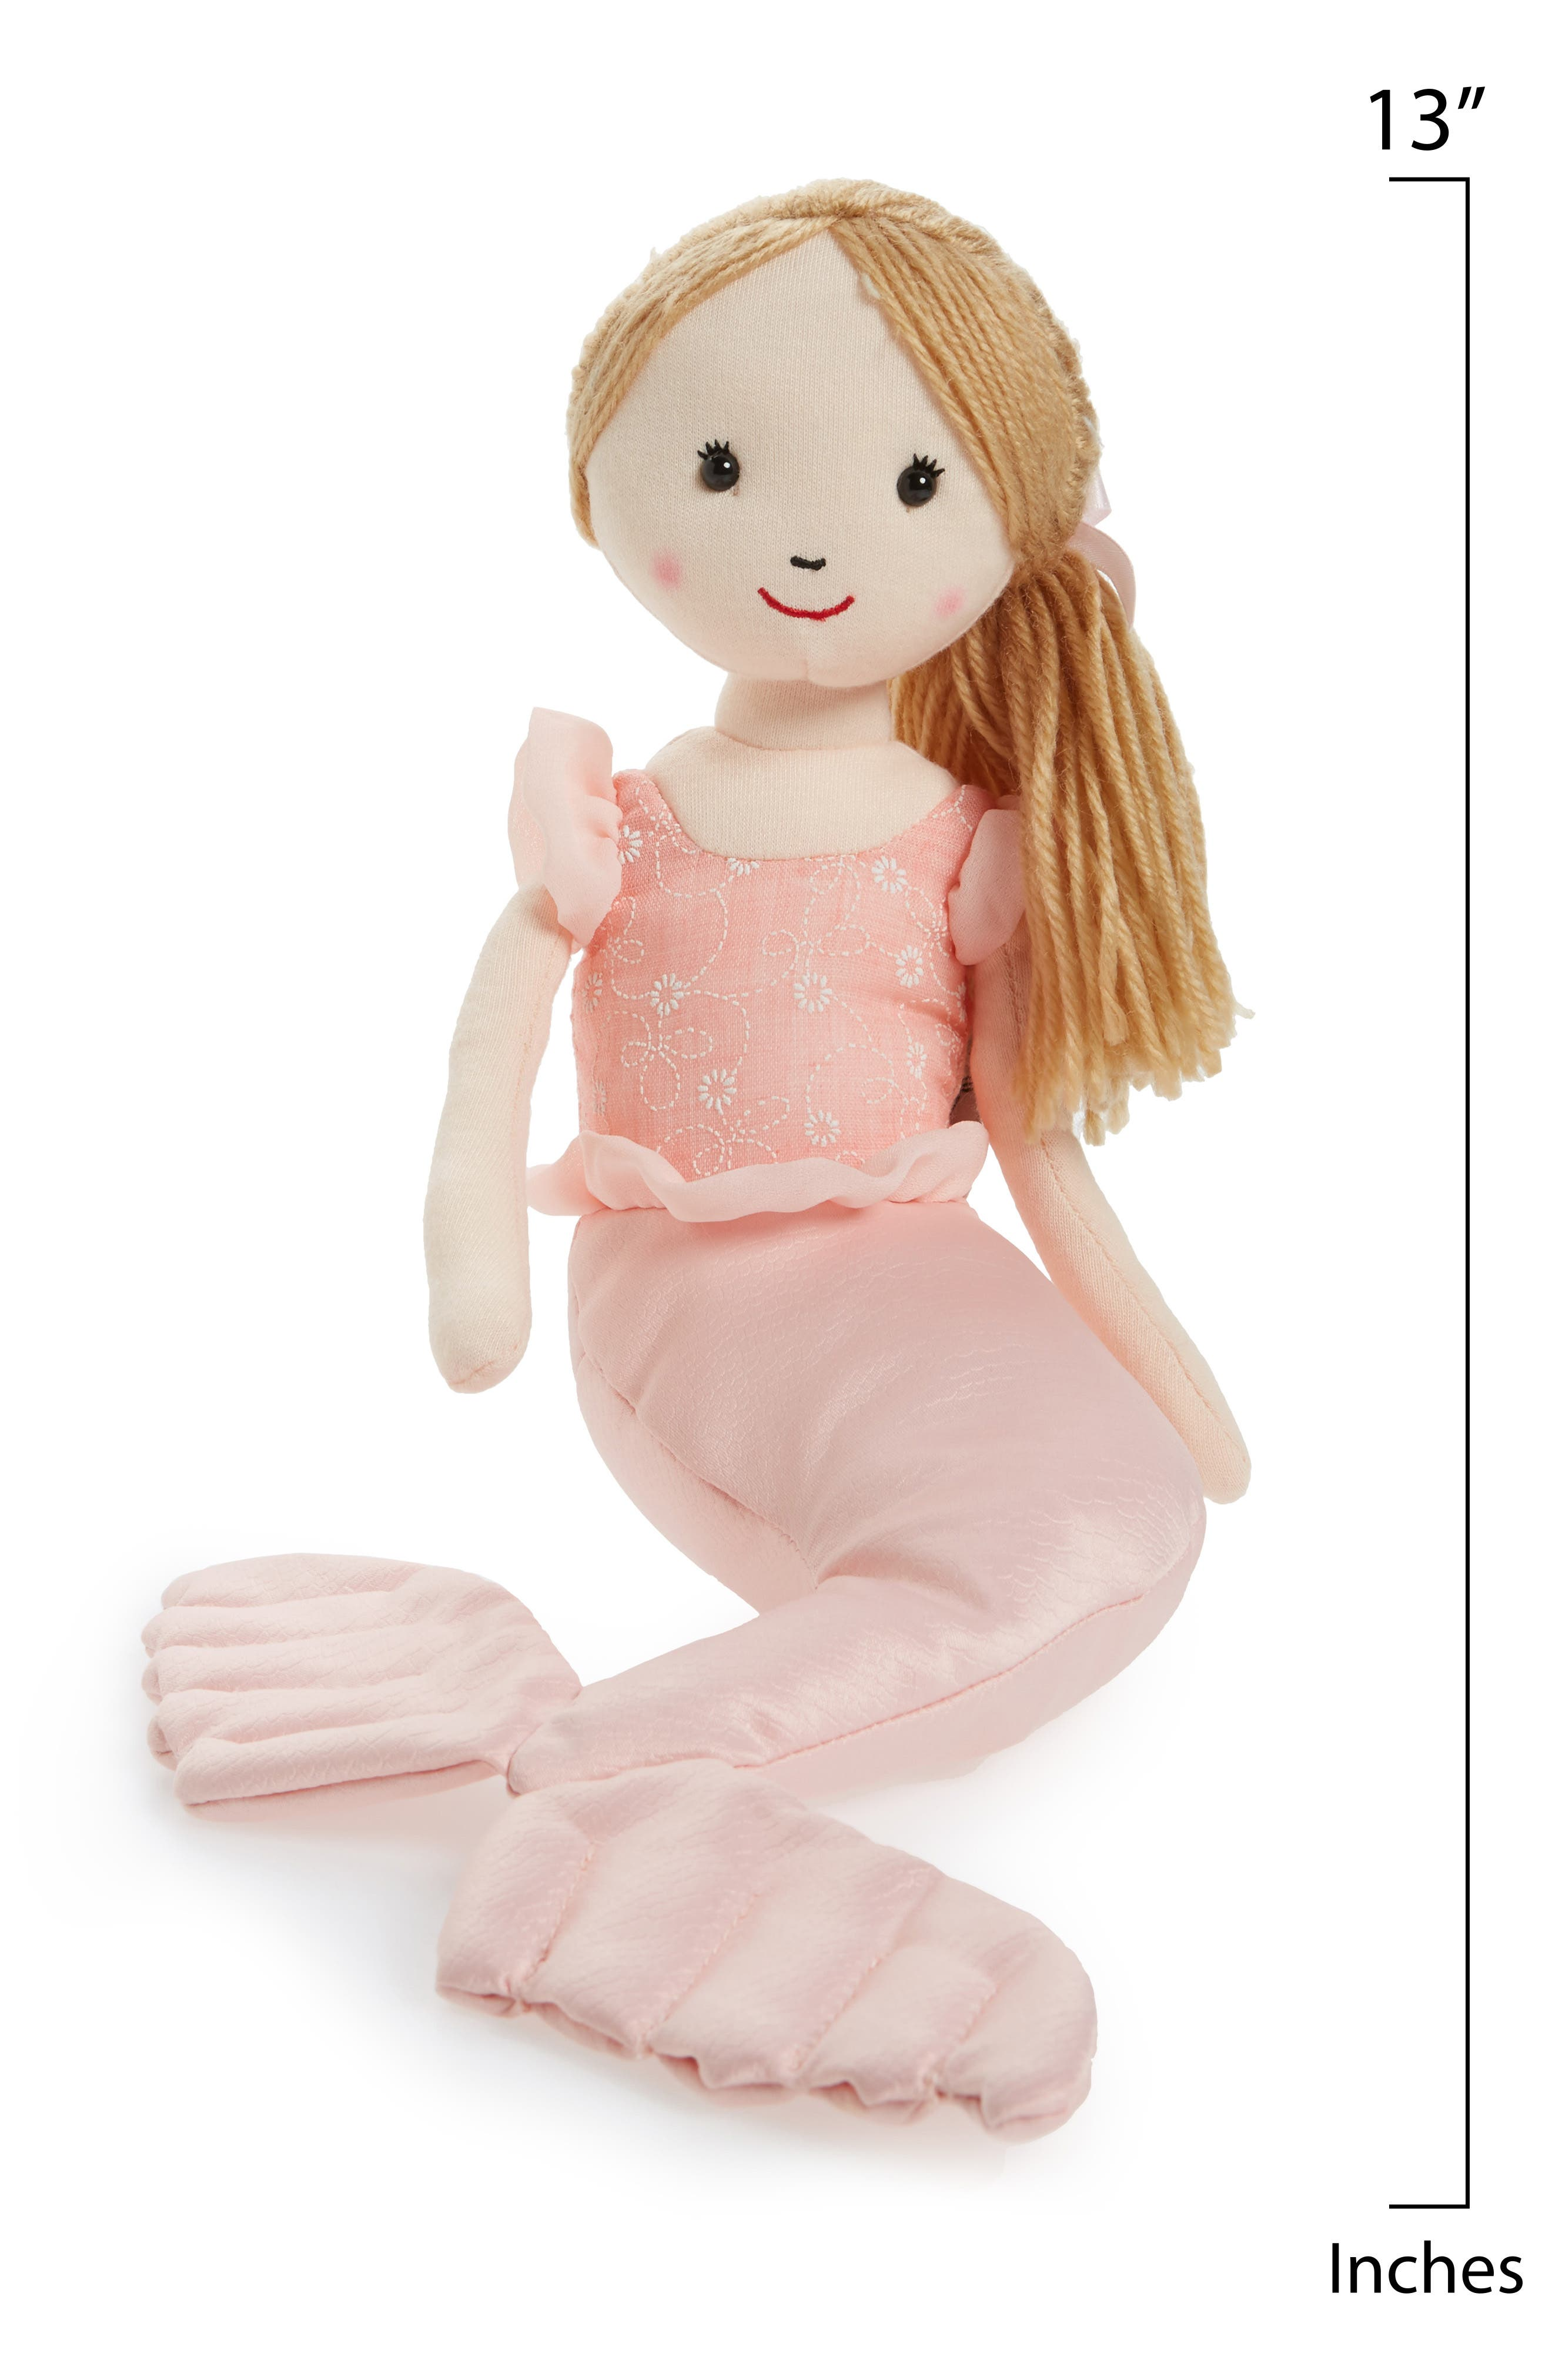 Shellbelle - Mermaid Millie Stuffed Toy,                             Alternate thumbnail 2, color,                             PINK